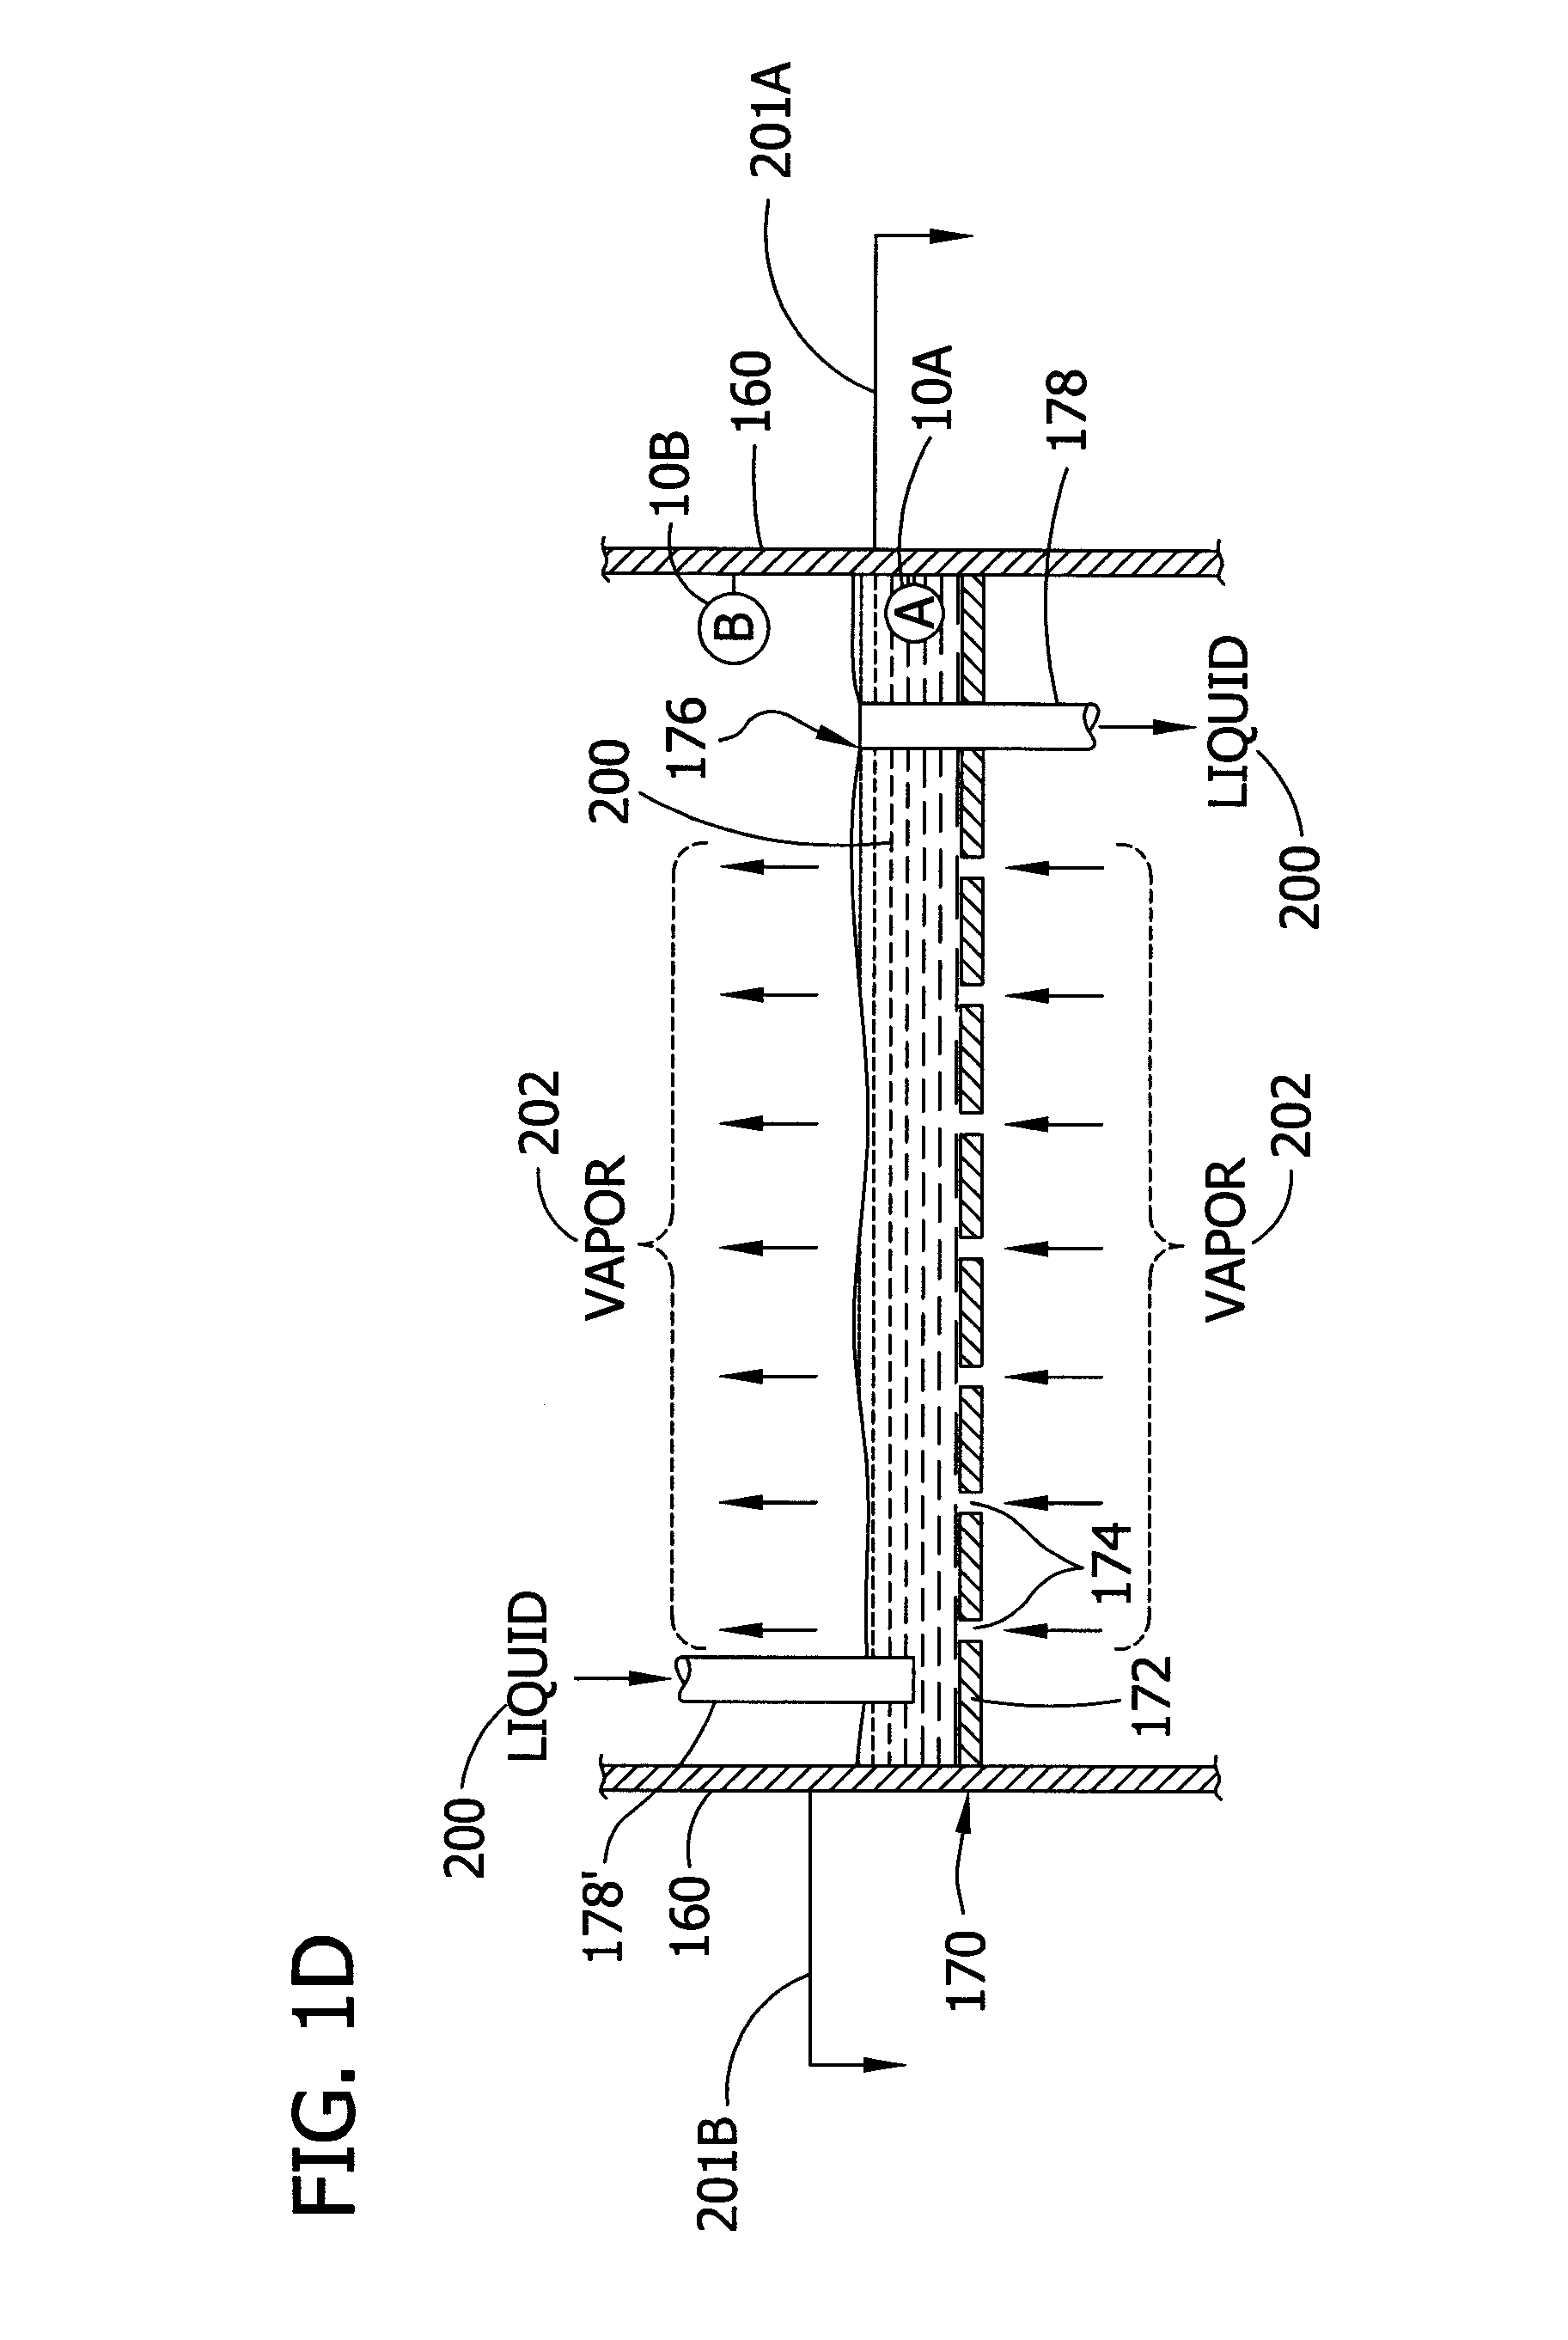 Patent Us20070017291 Monitoring And Controlling Unit Operations Air Receiver Tank Schematic Drawing